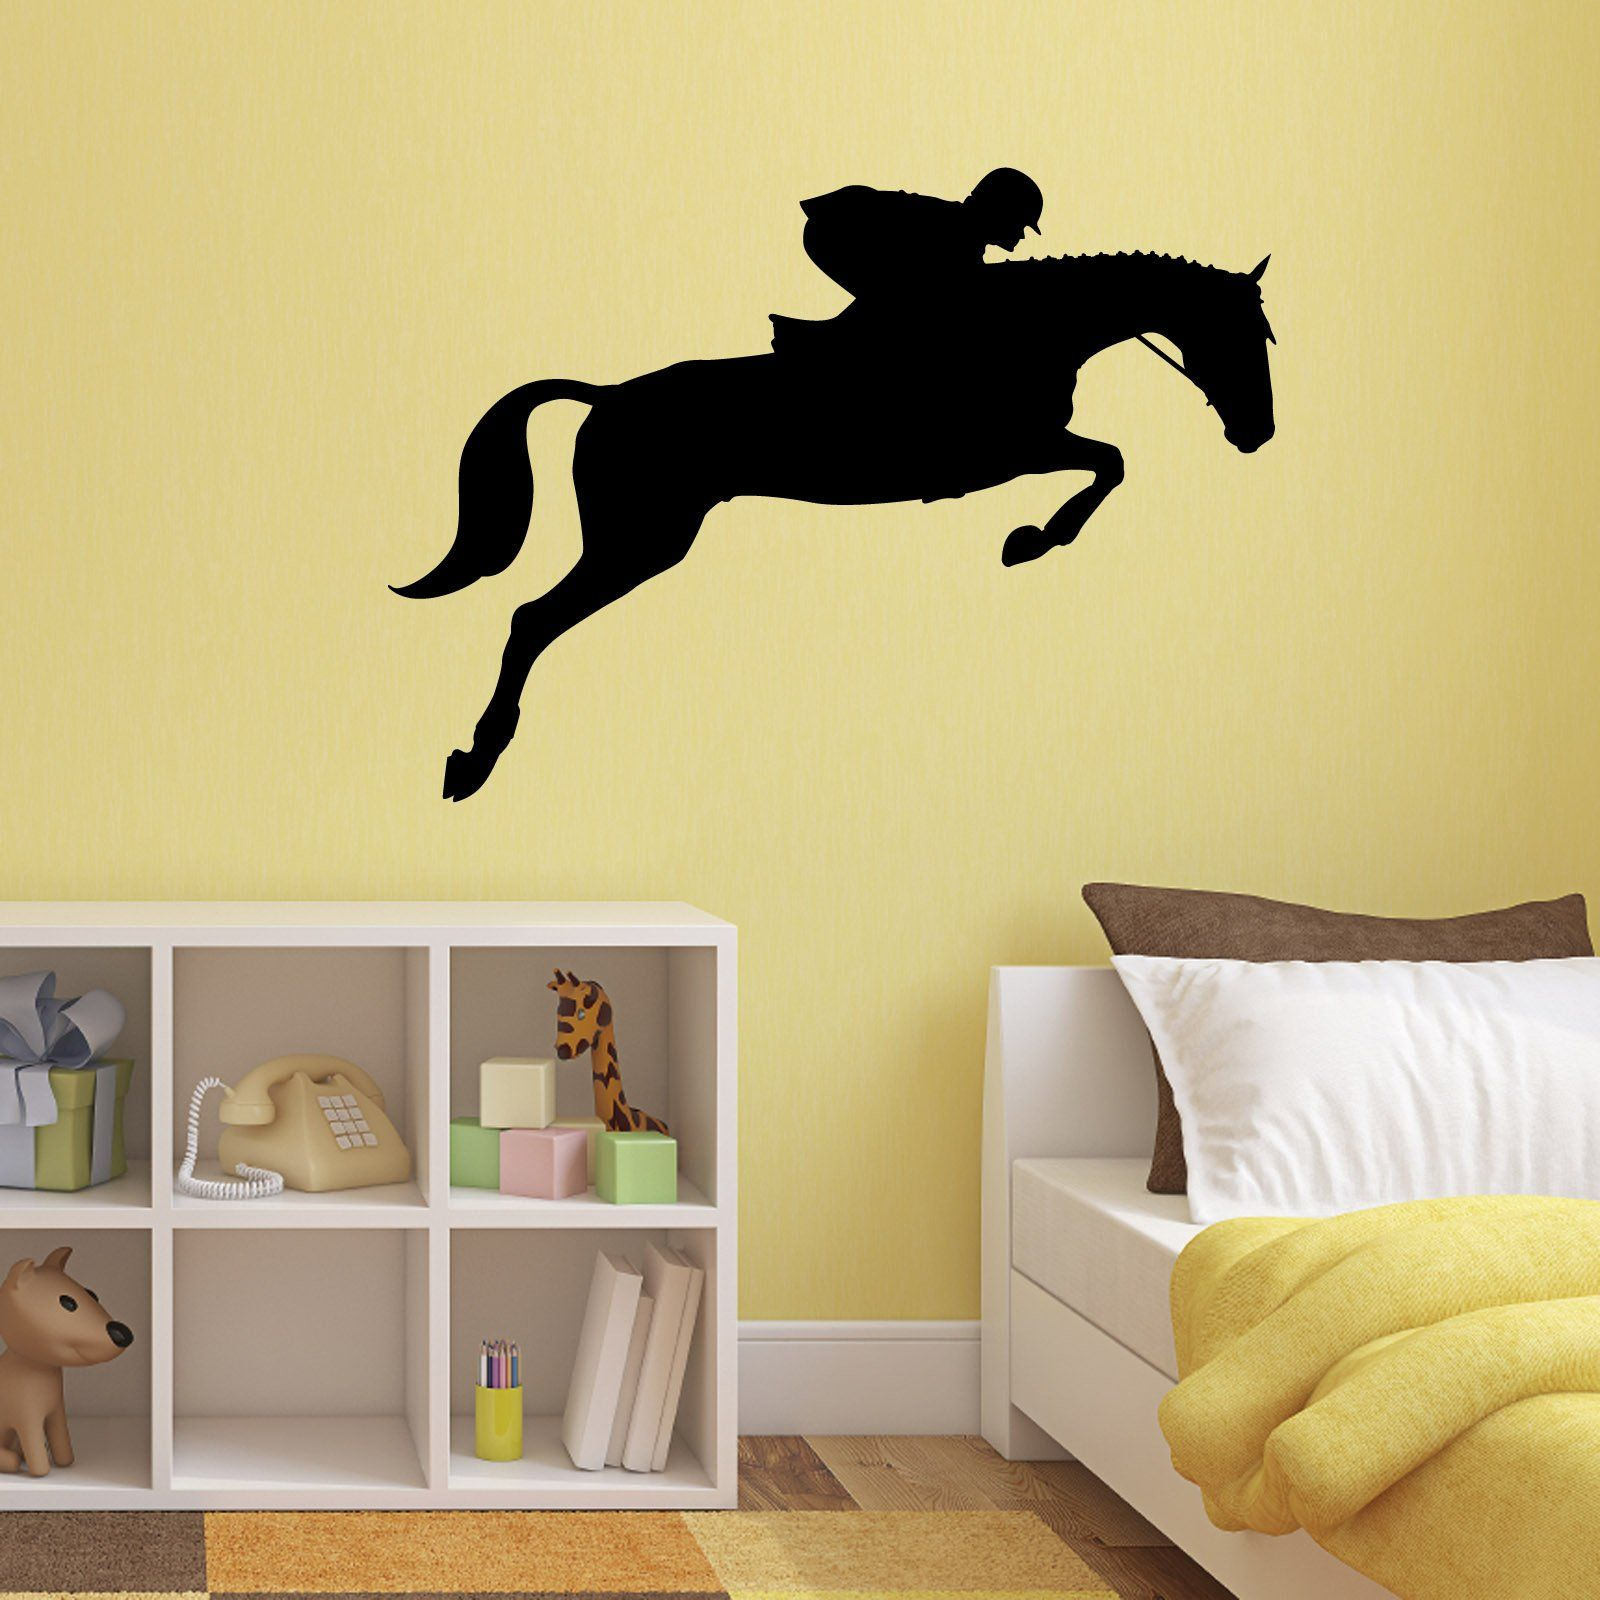 Show Jumping Horse Wall Decal - Equestrian Sports Sticker: Amazon.co ...